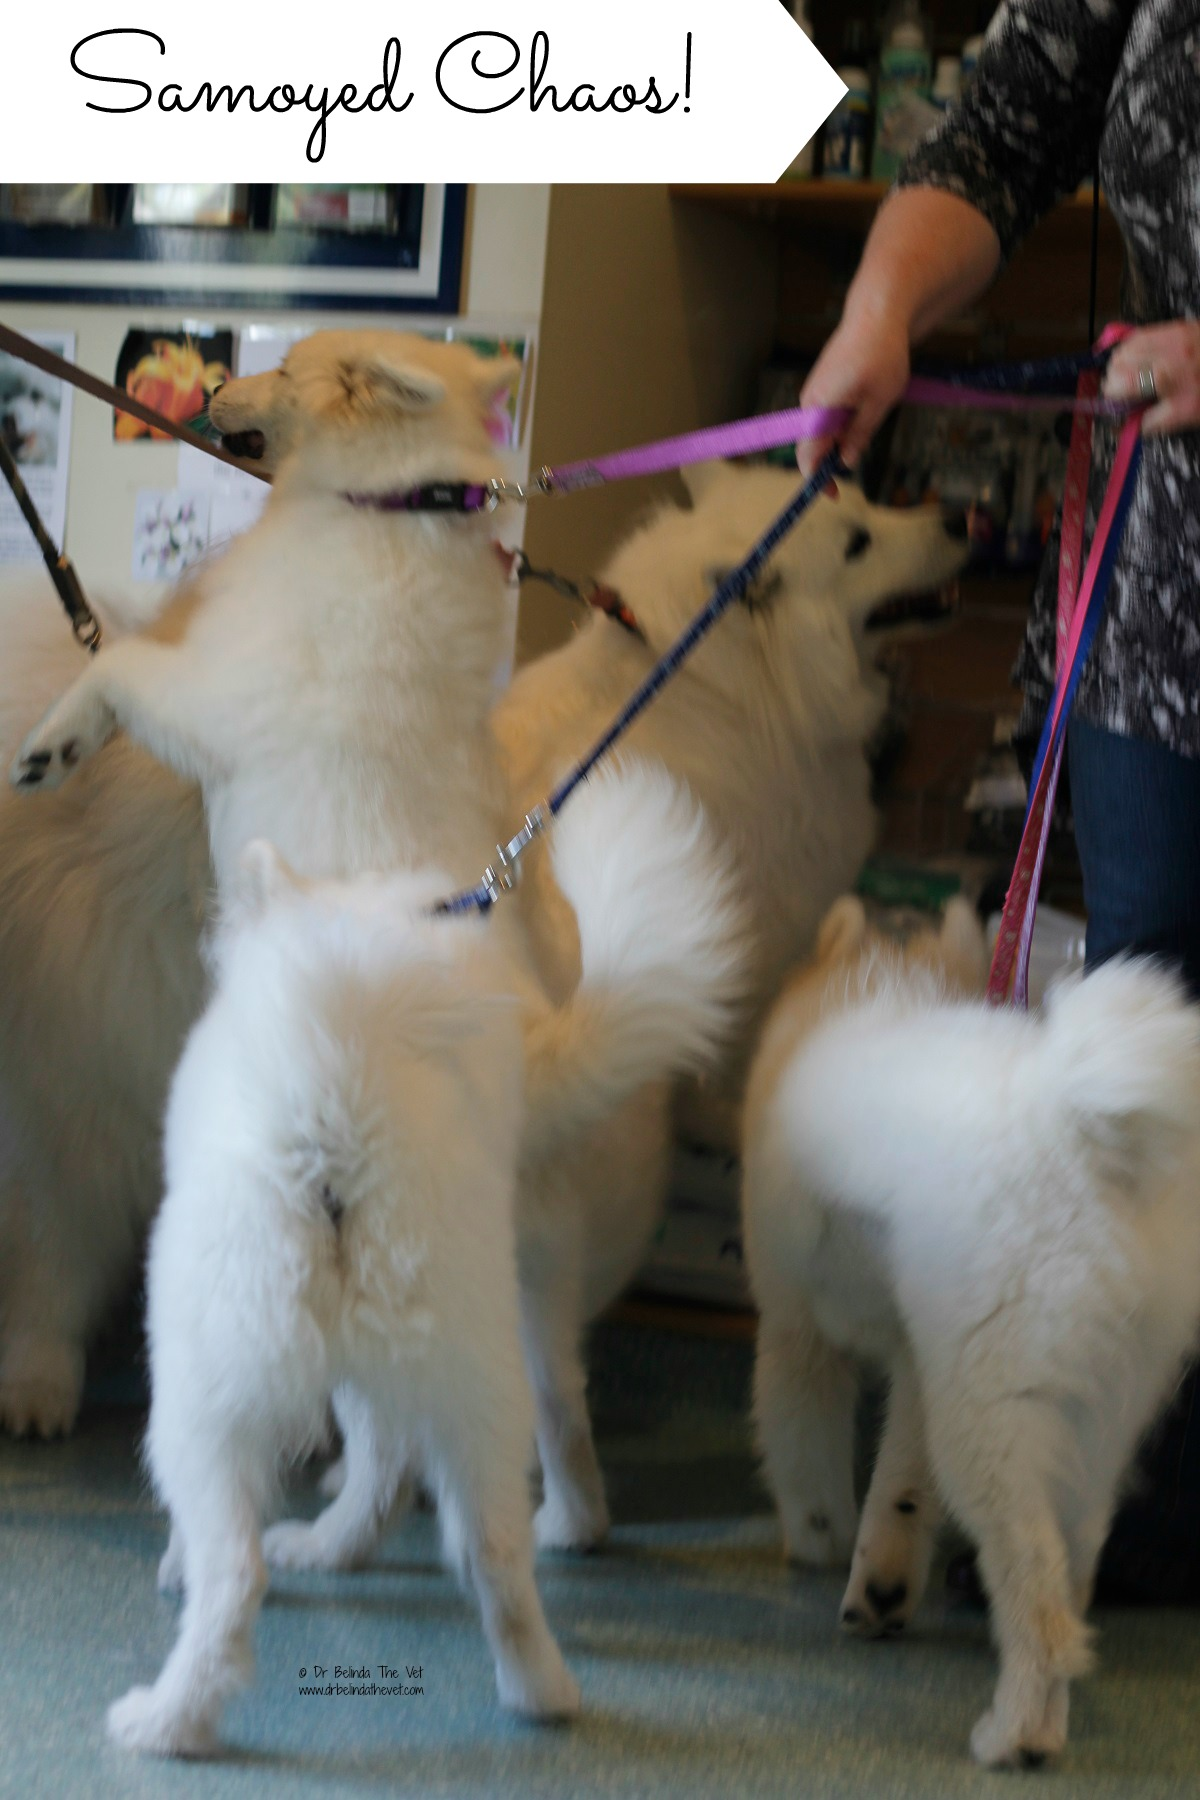 samoyed chaos at the vet